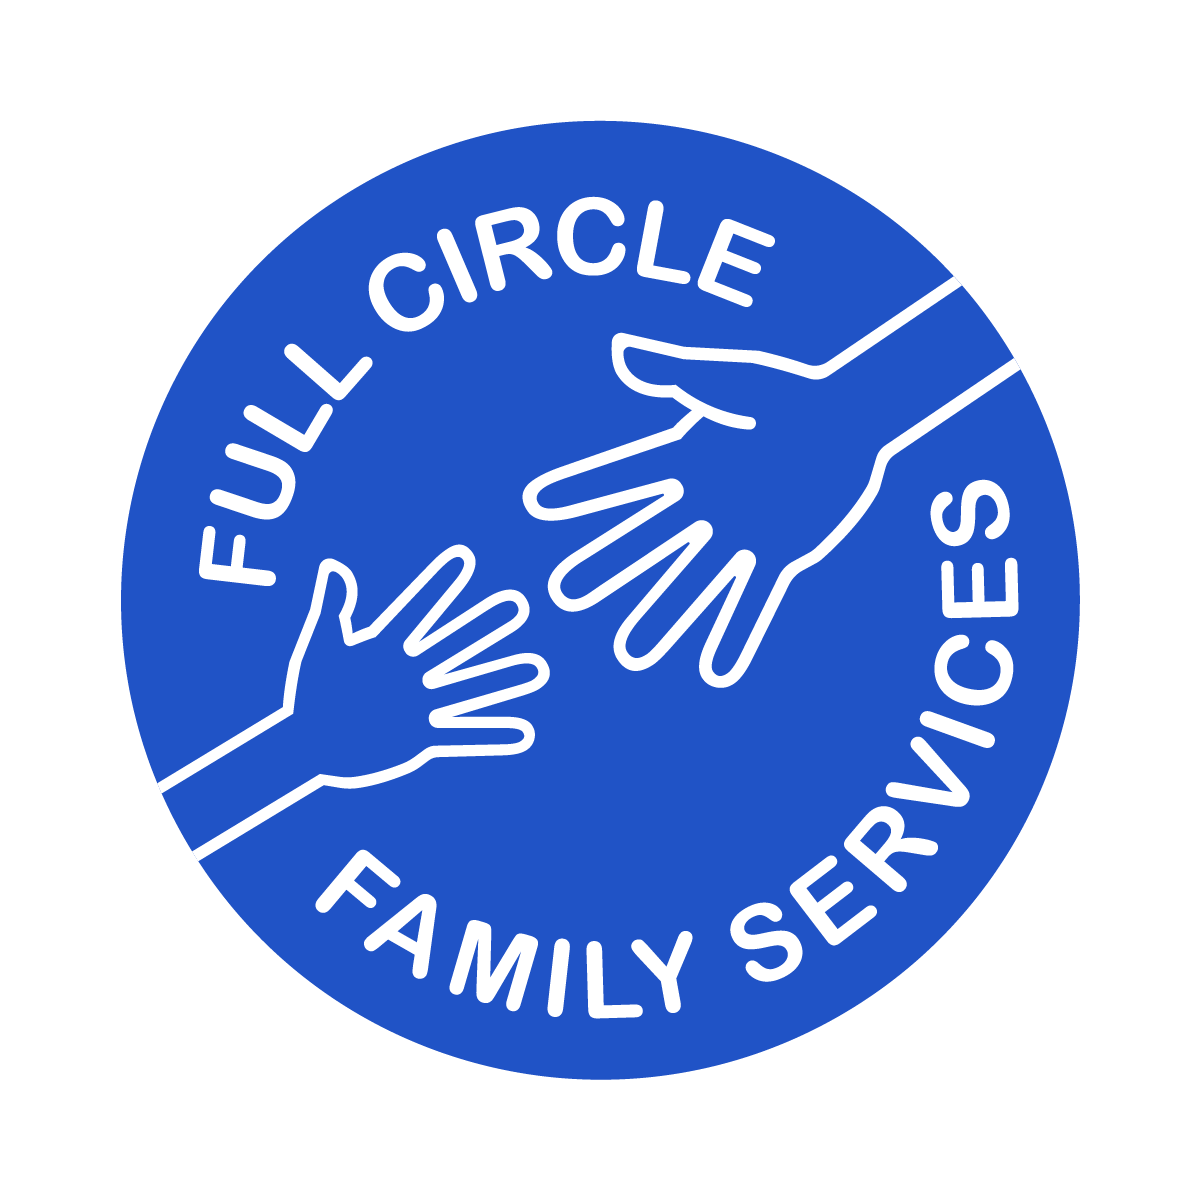 FULL CIRCLE FAMILY SERVICES